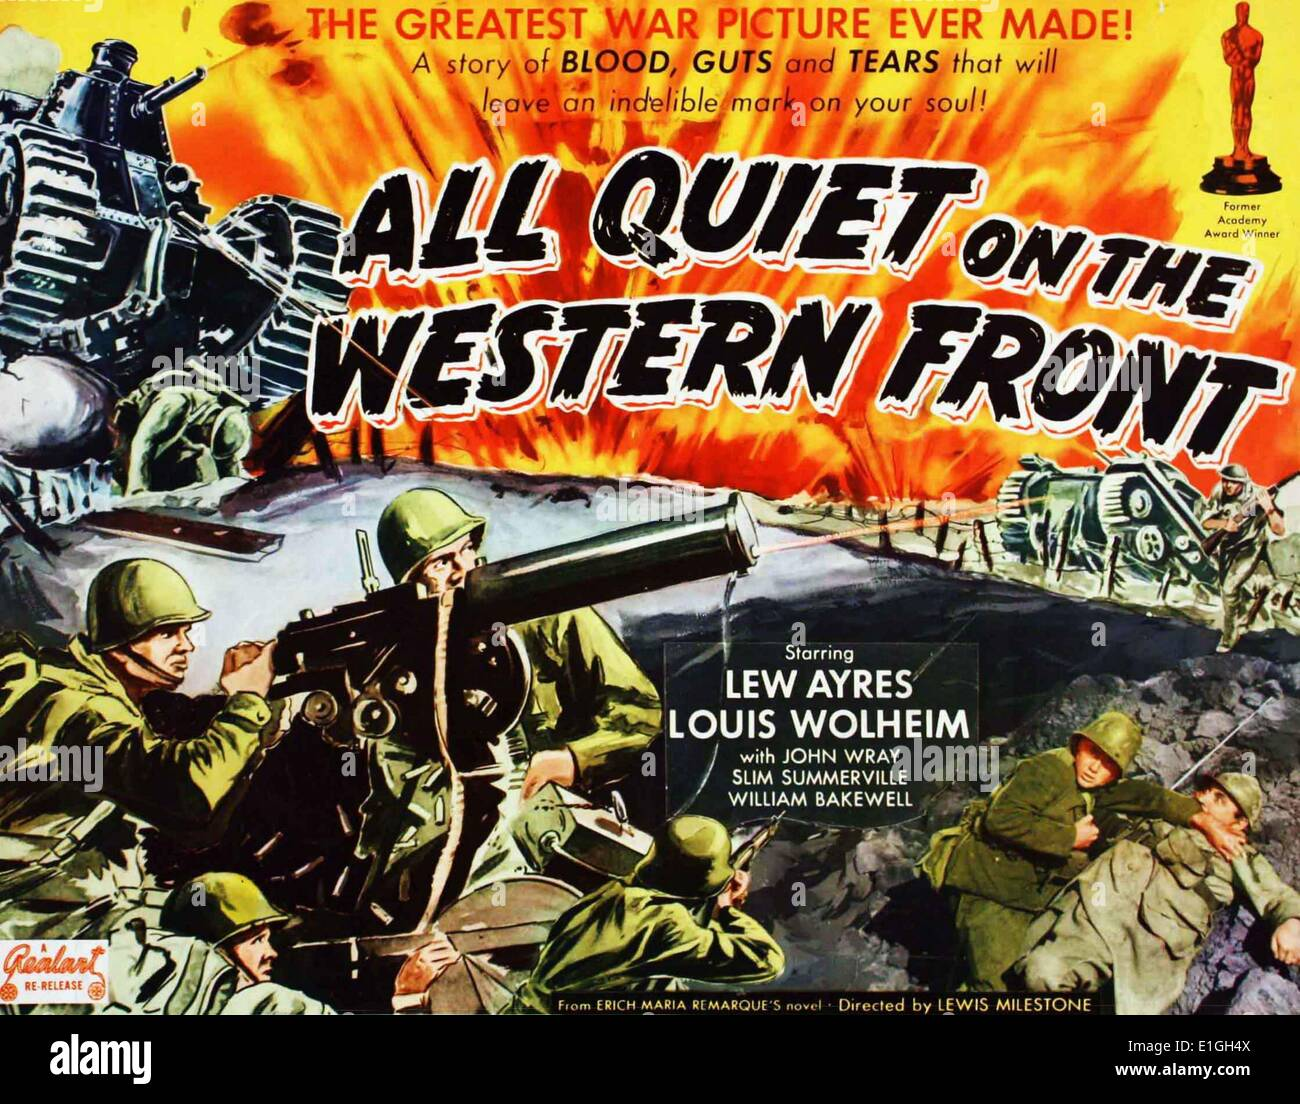 'All Quiet on the Western Front' starring Lew Ayres and Louis Wolheim a 1930 American war film. - Stock Image